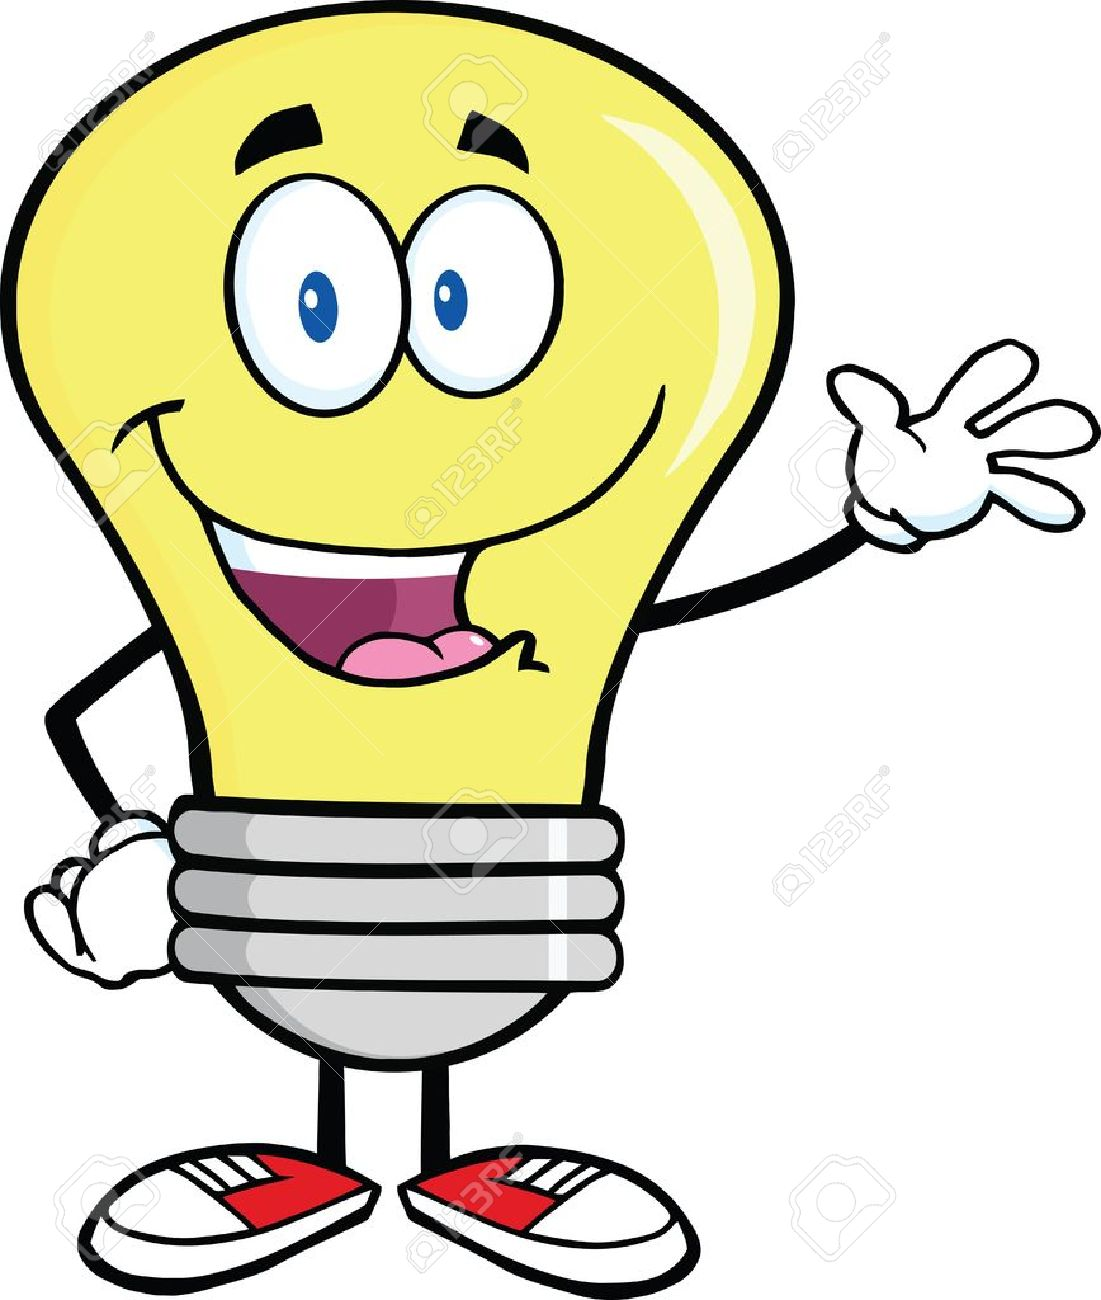 1101x1300 Light Bulb Cartoon Character Waving For Greeting Royalty Free